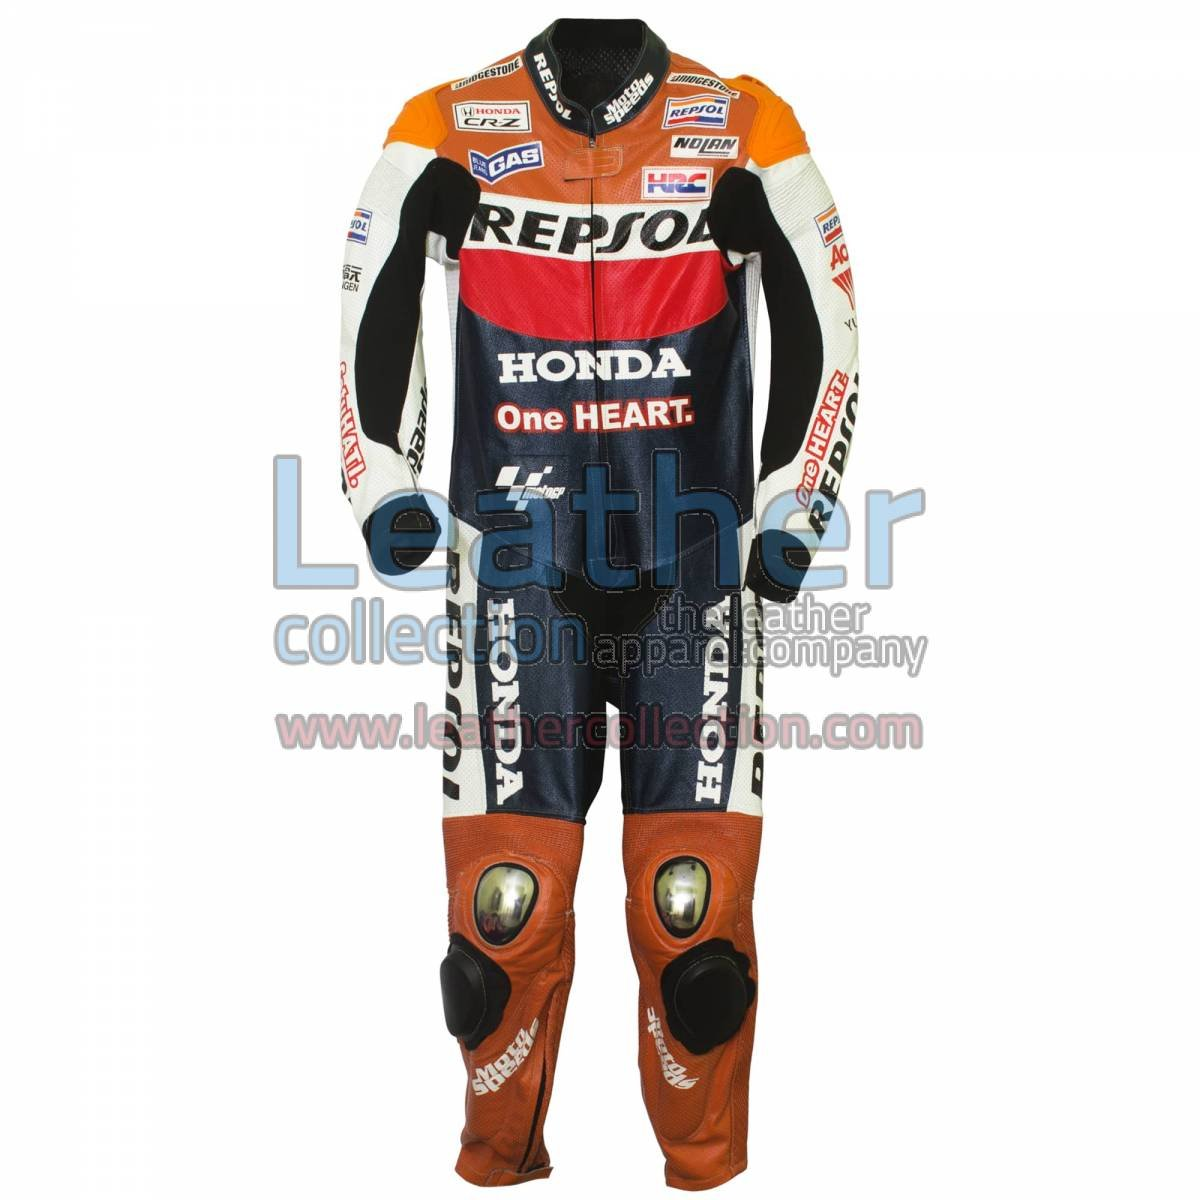 Dani Pedrosa 2012 Honda Repsol One Heart Race Suit